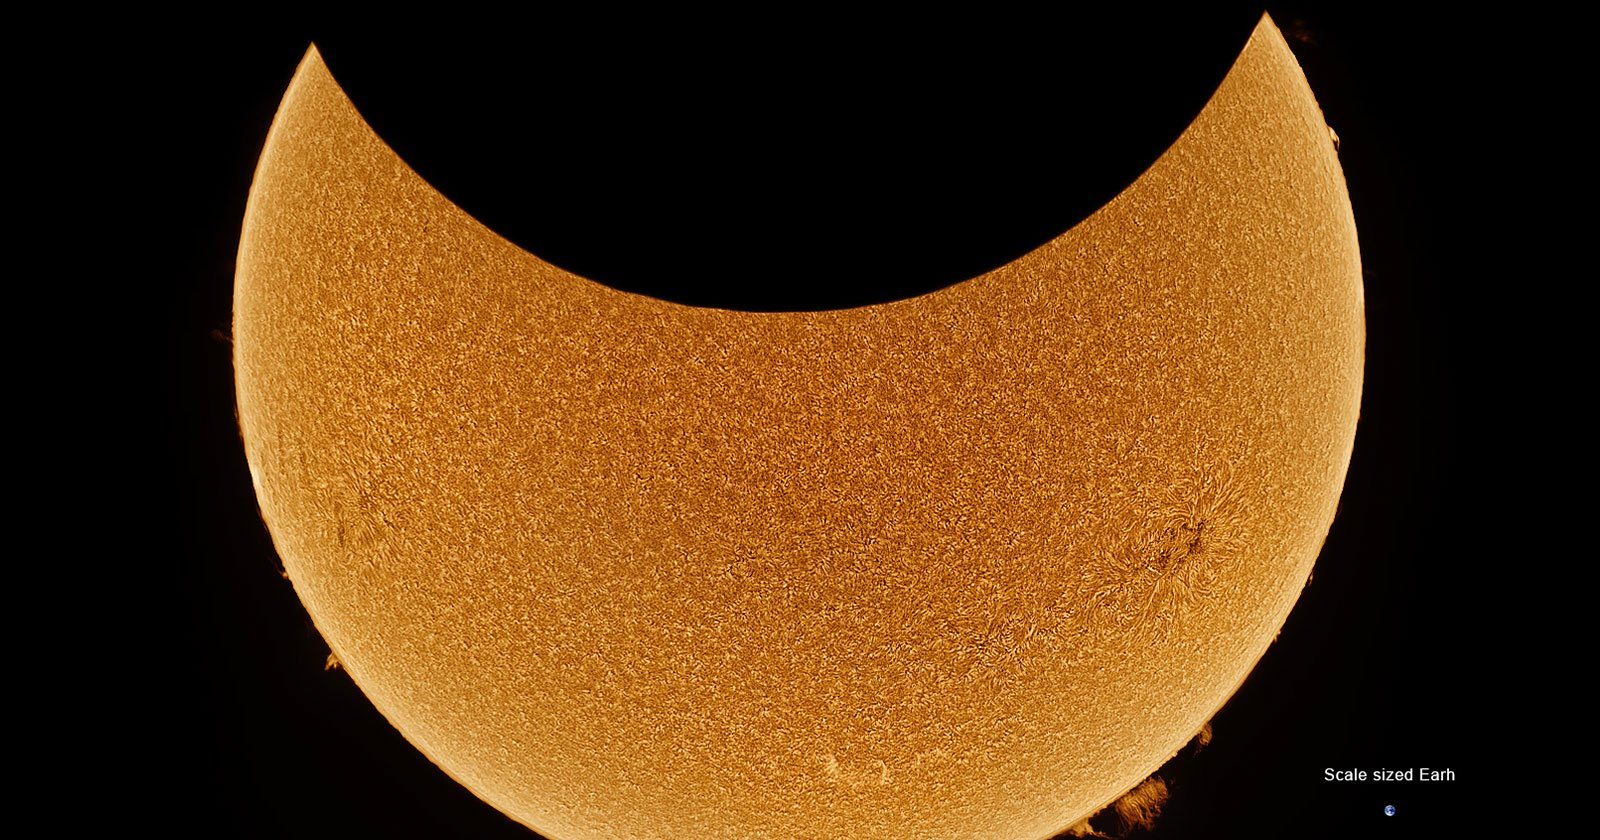 This 2021 Solar Eclipse Timelapse Was Made from 50000 Photos - PetaPixel